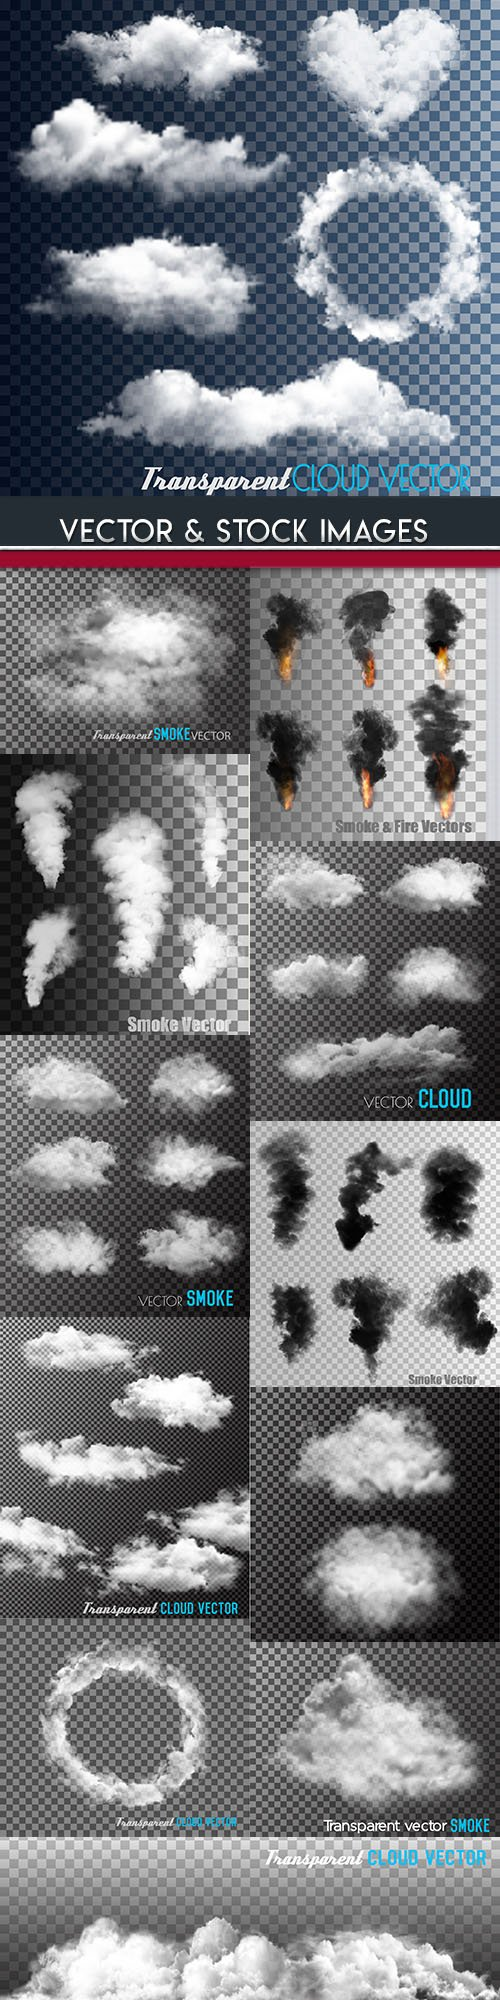 Smoke and clouds collection transparent background